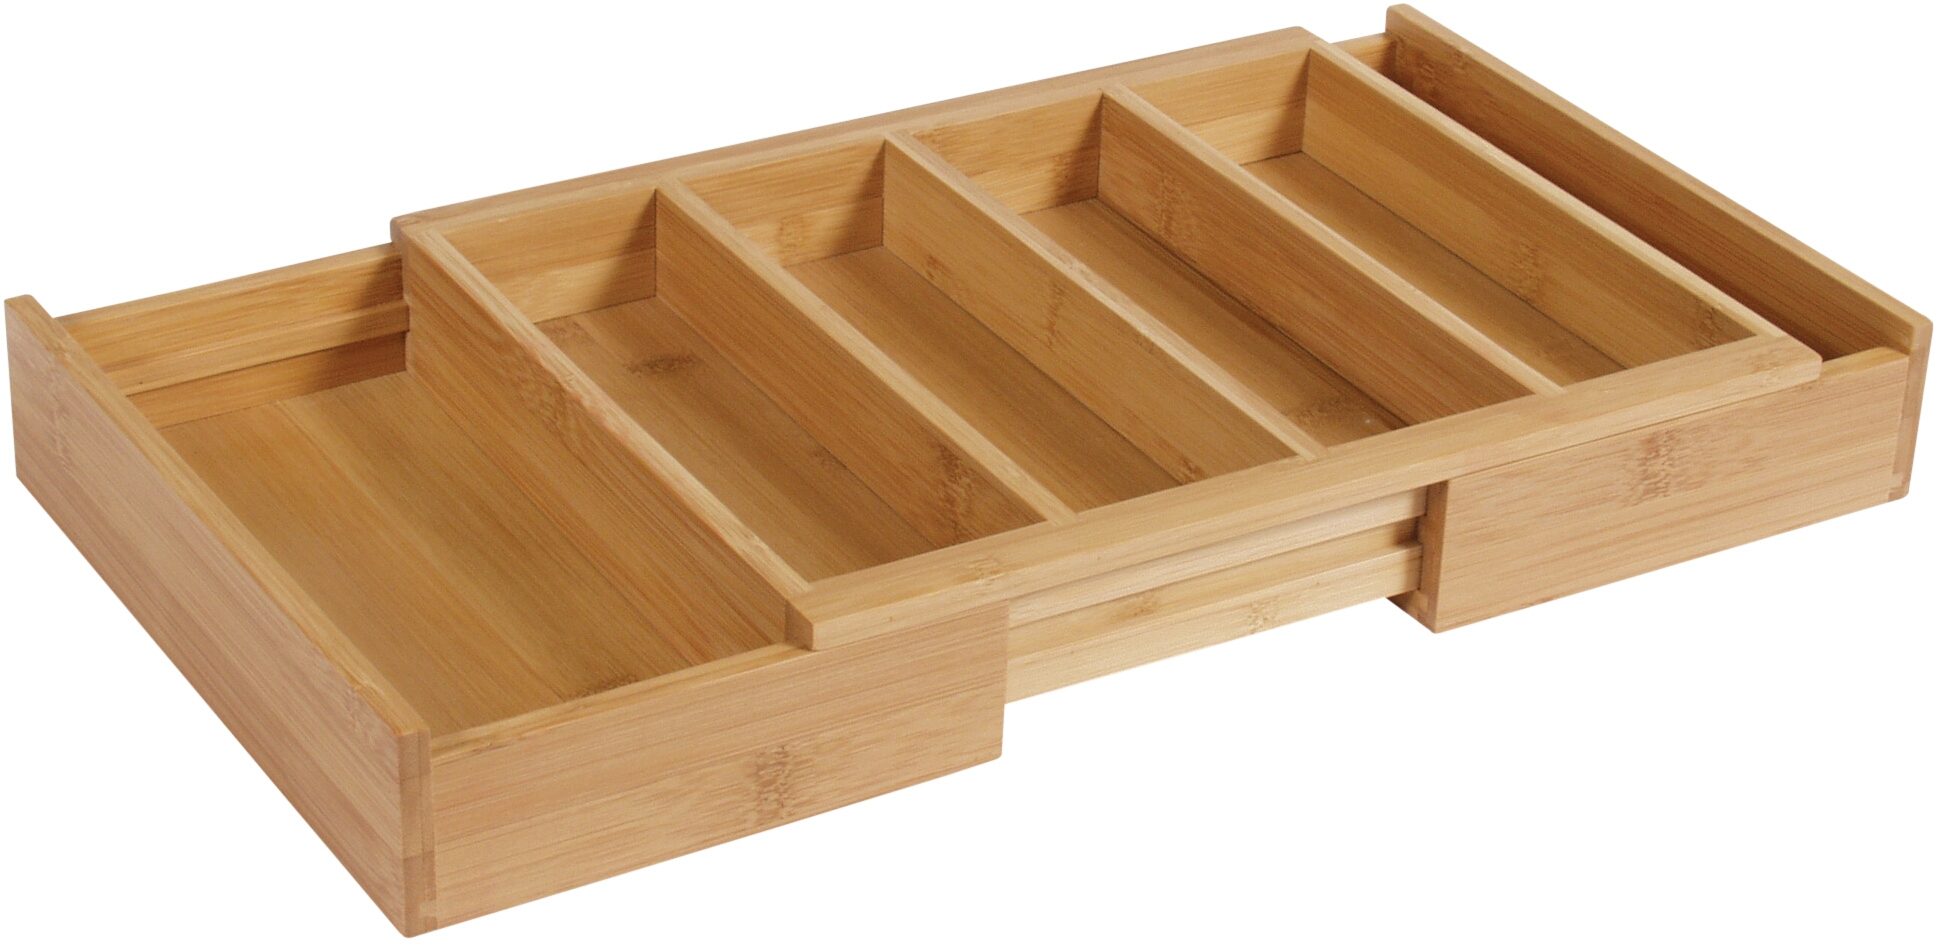 Island Bamboo Small Expanding Flatware Tray, 10 x 13 x 2 Inch